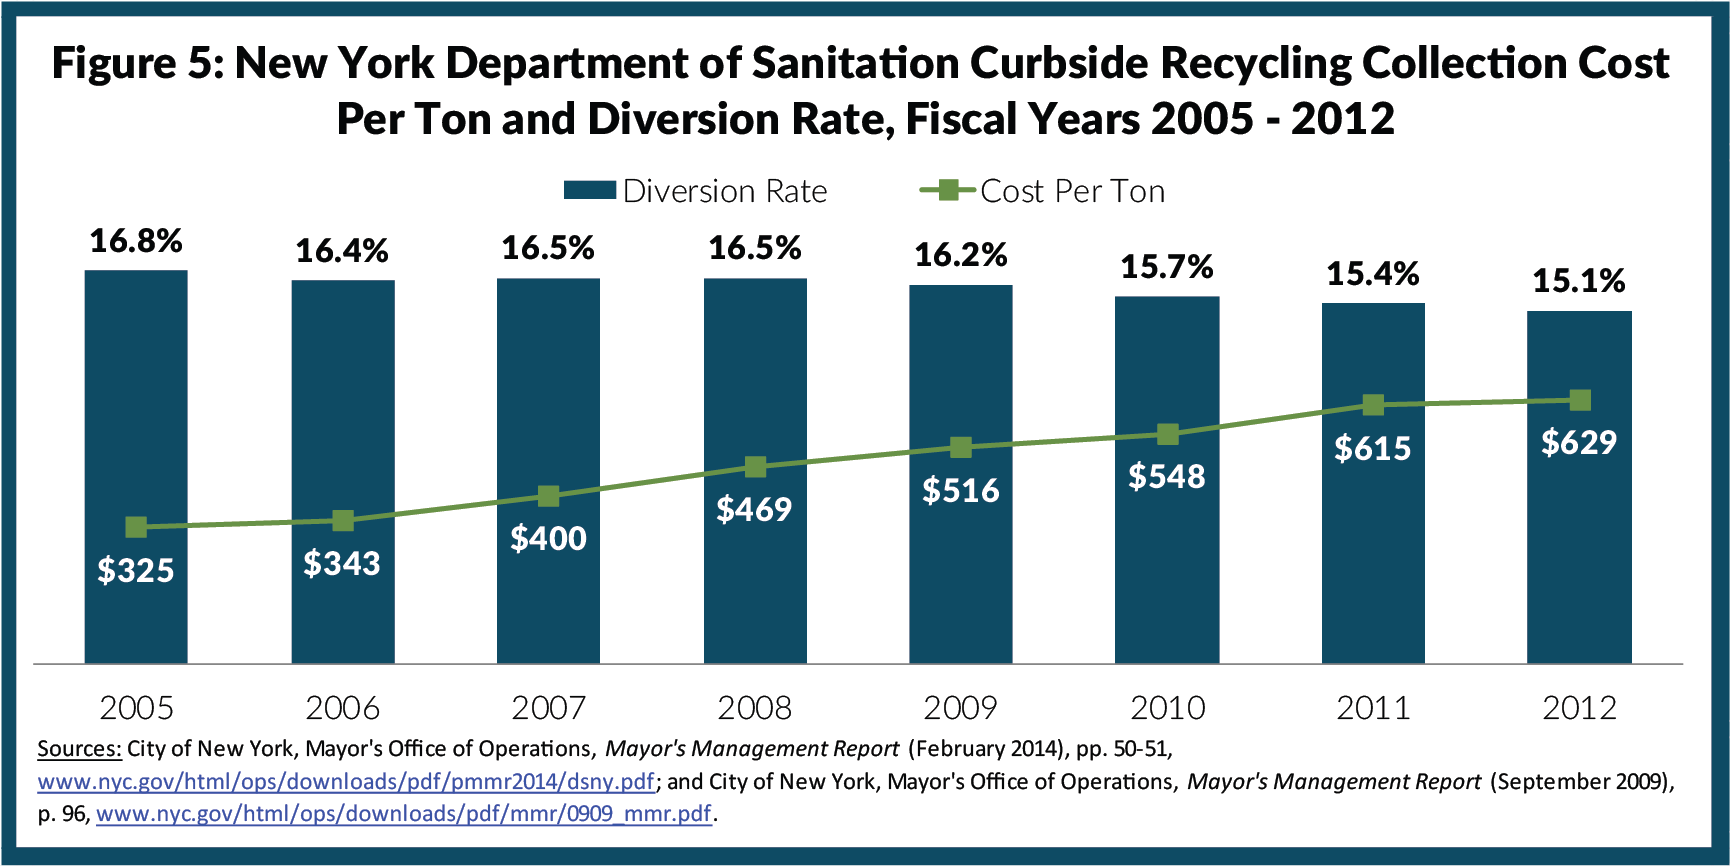 Figure 5: New York Department of Sanitation Curbside Recycling Collection Cost Per Ton and Diversion Rate, Fiscal Years 2005-2012